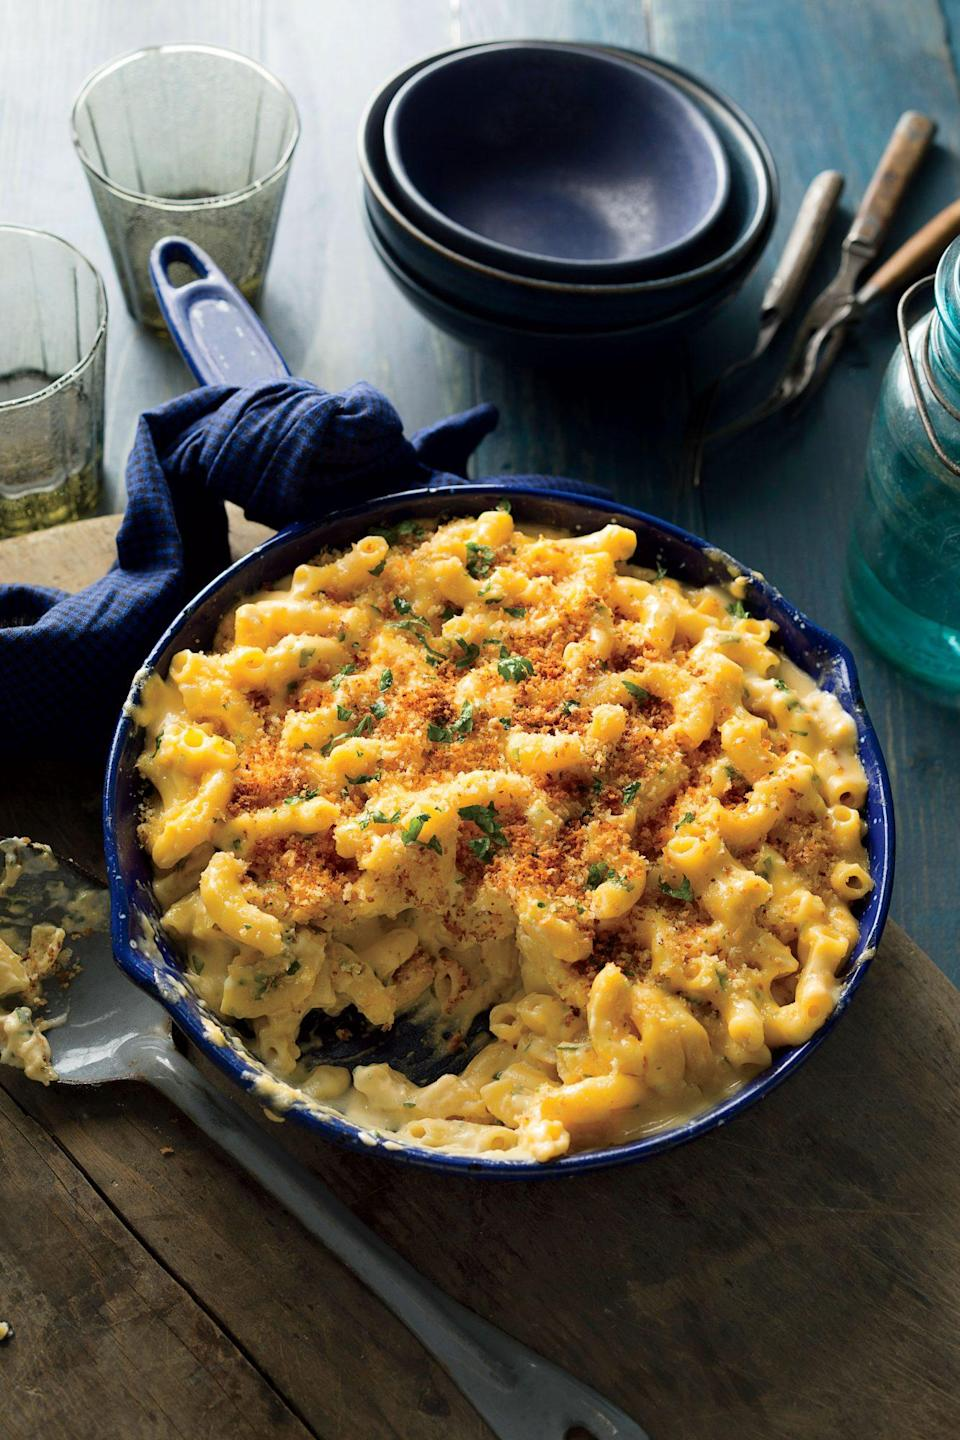 """<p><strong>Recipe: <a href=""""https://www.southernliving.com/recipes/skillet-mac-cheese-crispy-breadcrumbs-recipe"""" rel=""""nofollow noopener"""" target=""""_blank"""" data-ylk=""""slk:Skillet Mac and Cheese with Crispy Breadcrumbs"""" class=""""link rapid-noclick-resp"""">Skillet Mac and Cheese with Crispy Breadcrumbs</a></strong></p> <p>Baking your homemade mac and cheese in the skillet leaves you with perfect texture you can't find in a blue box.</p>"""